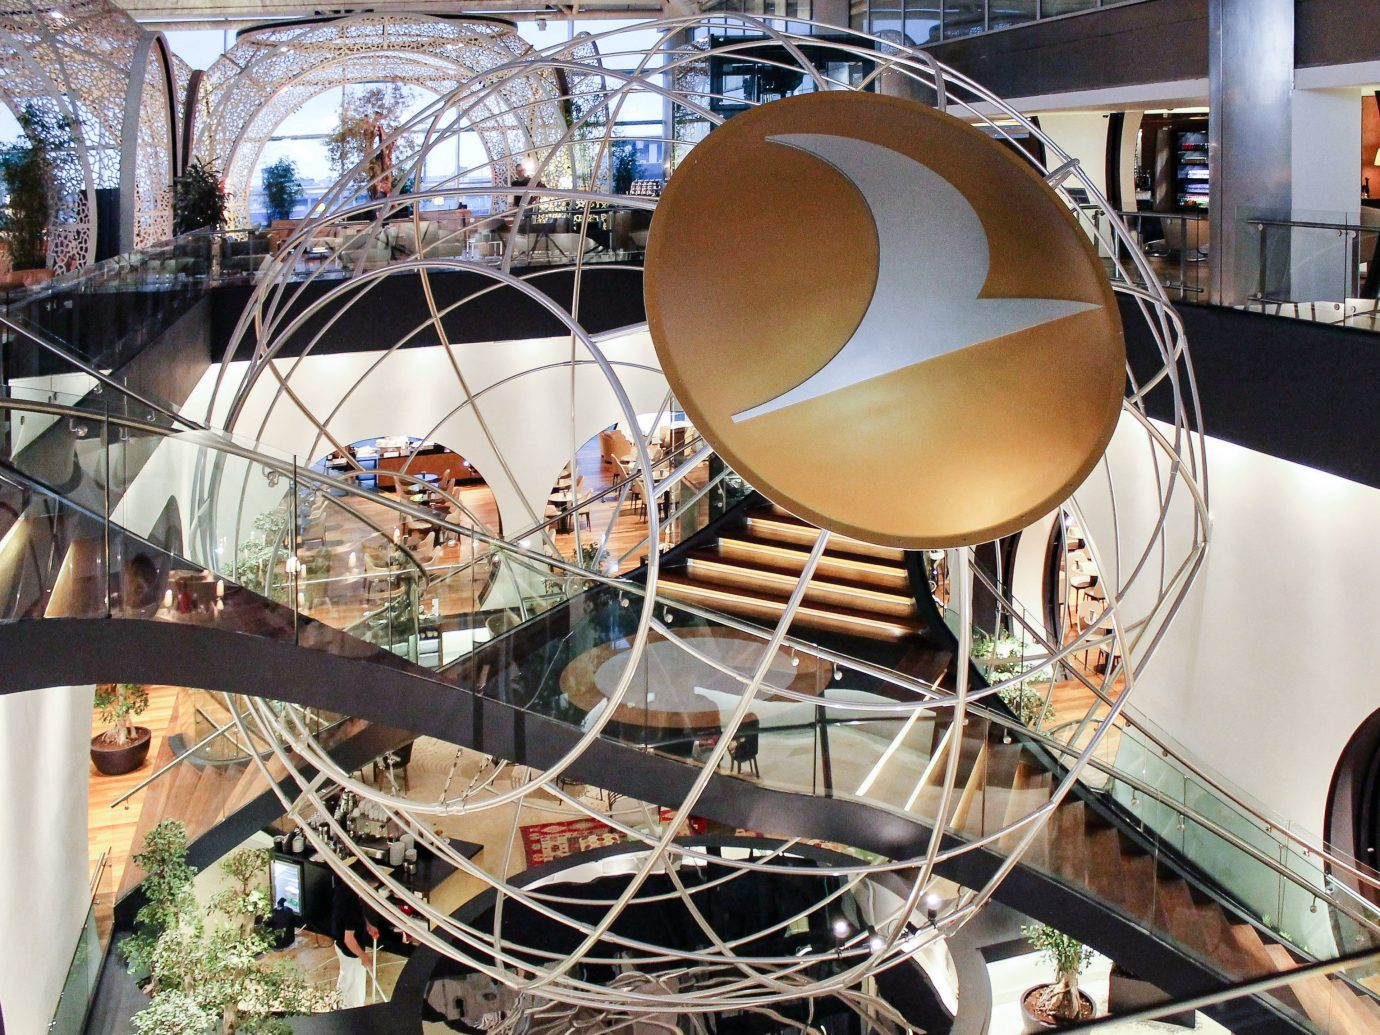 Arts + Culture Hotels Jetsetter Guides indoor tourist attraction building